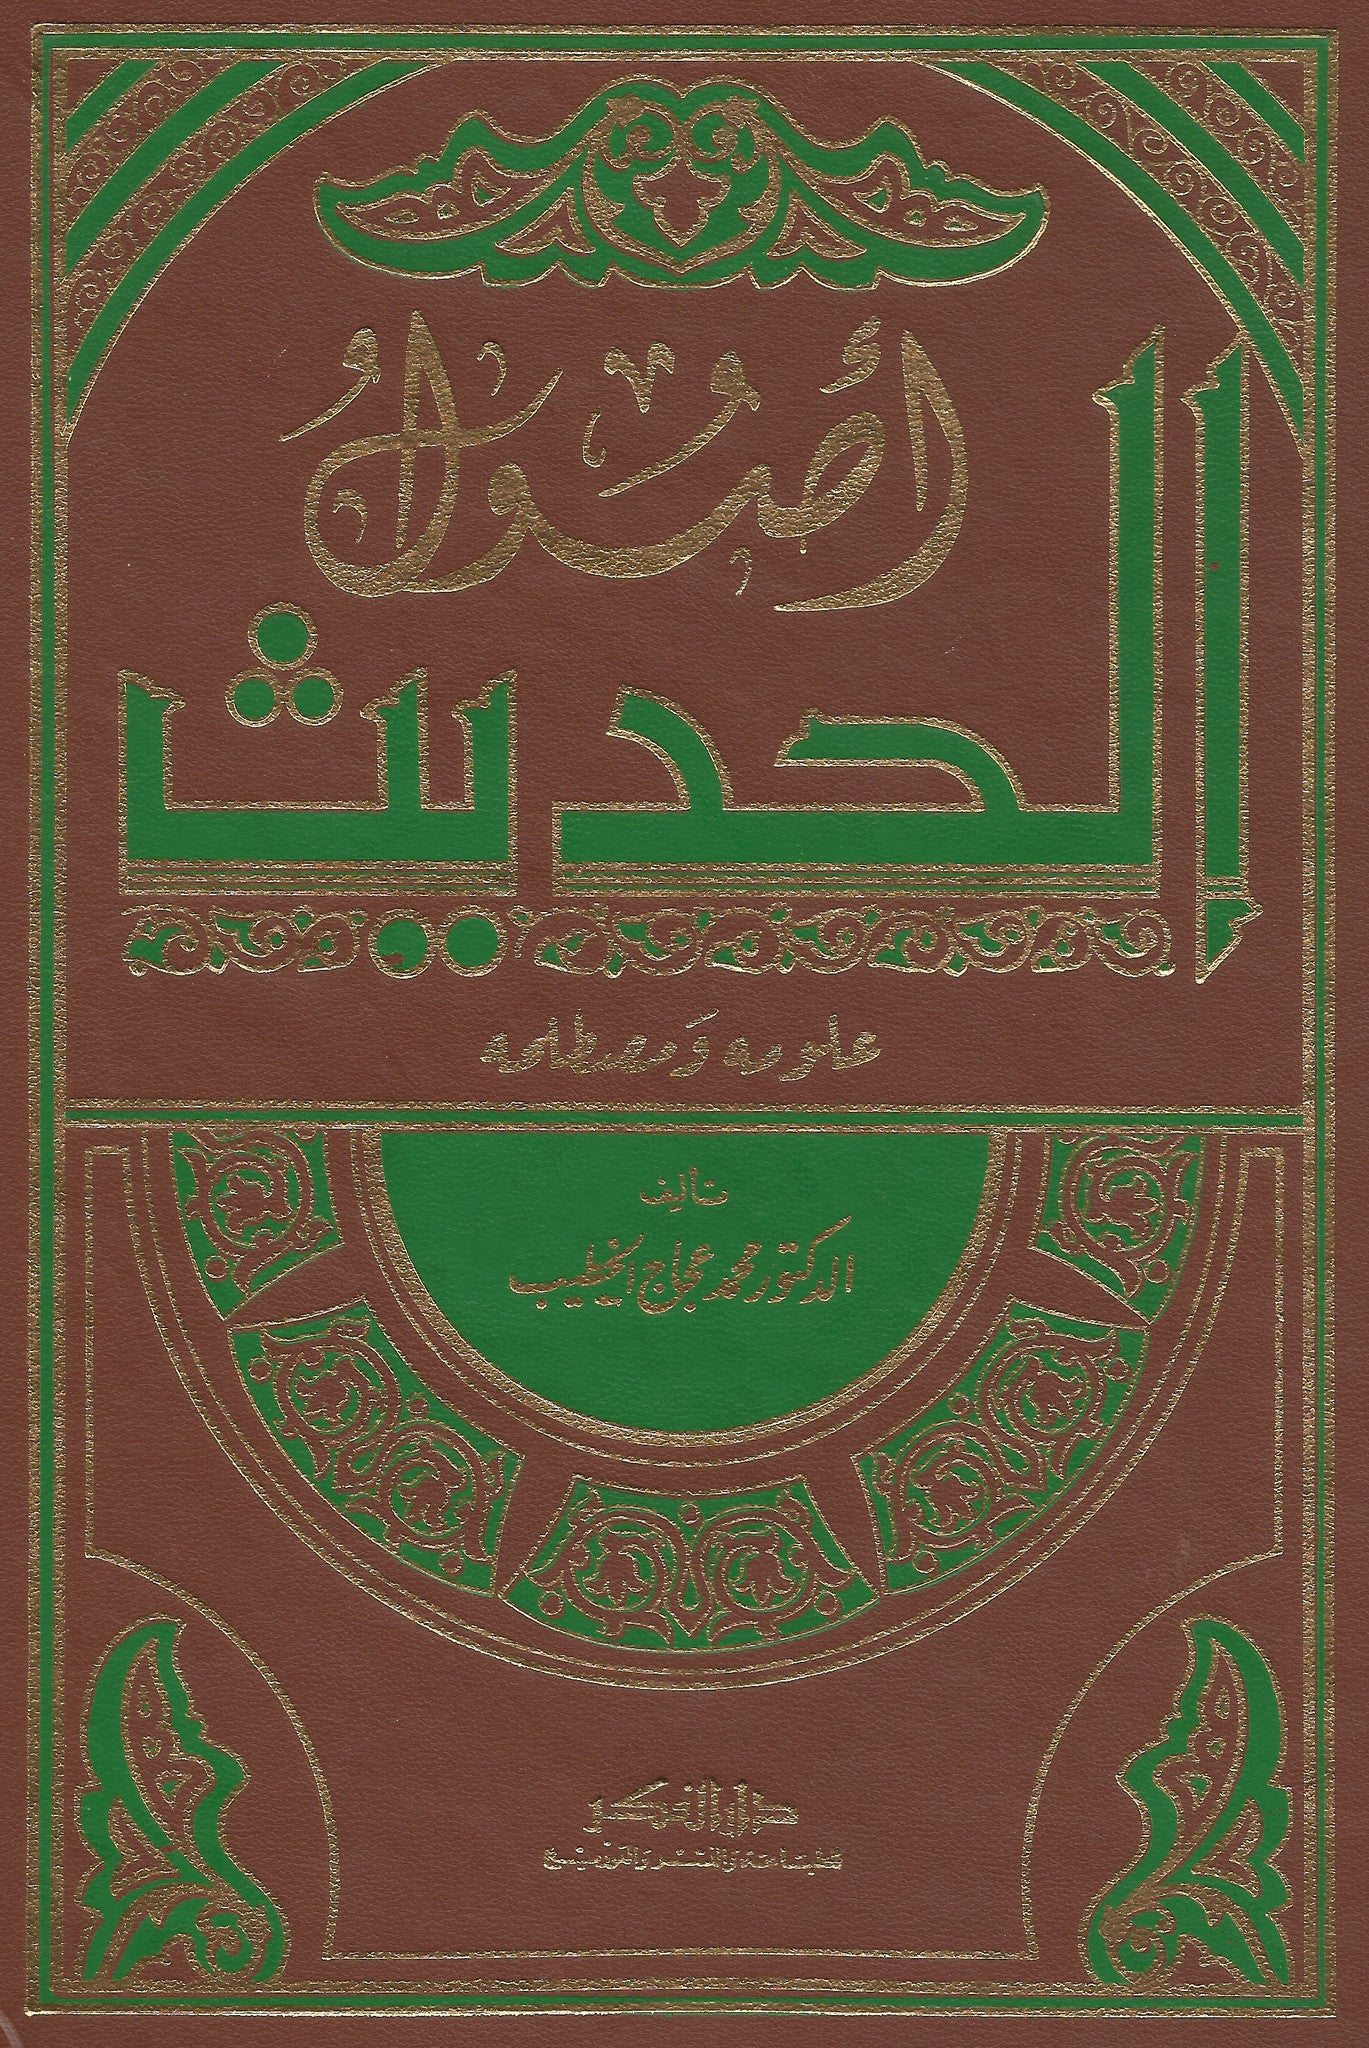 Usul al-Hadith أصول الحديث , Book - Daybreak International Bookstore, Daybreak Press Global Bookshop